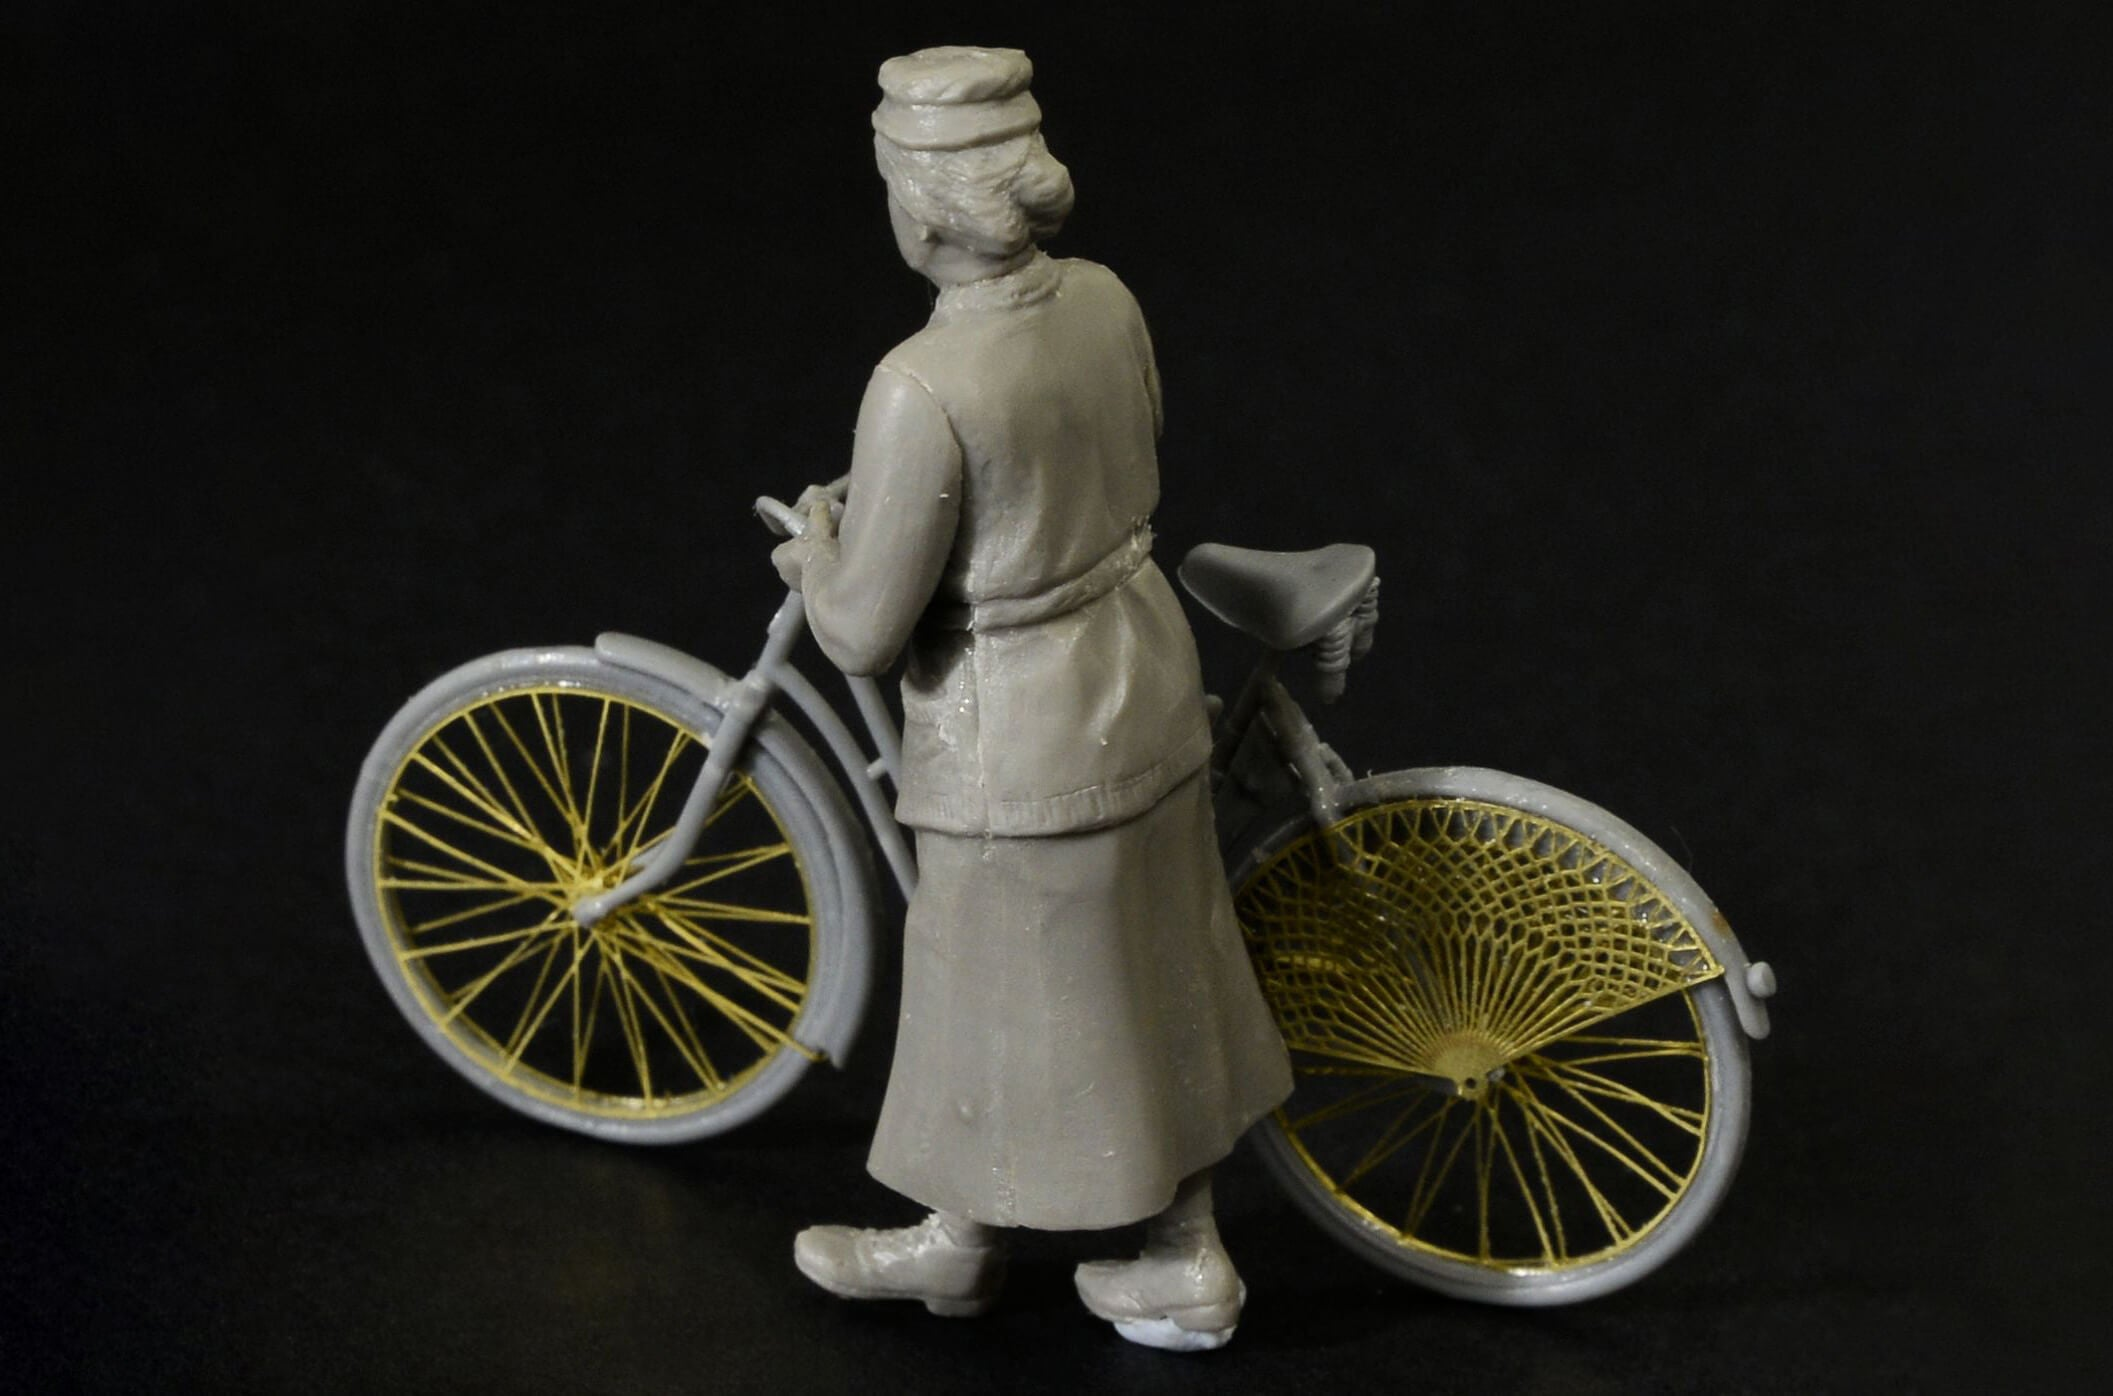 Masterbox 1:35 Scale Frau Muller Europe WWII Era Figure Woman and Womens Bicycle